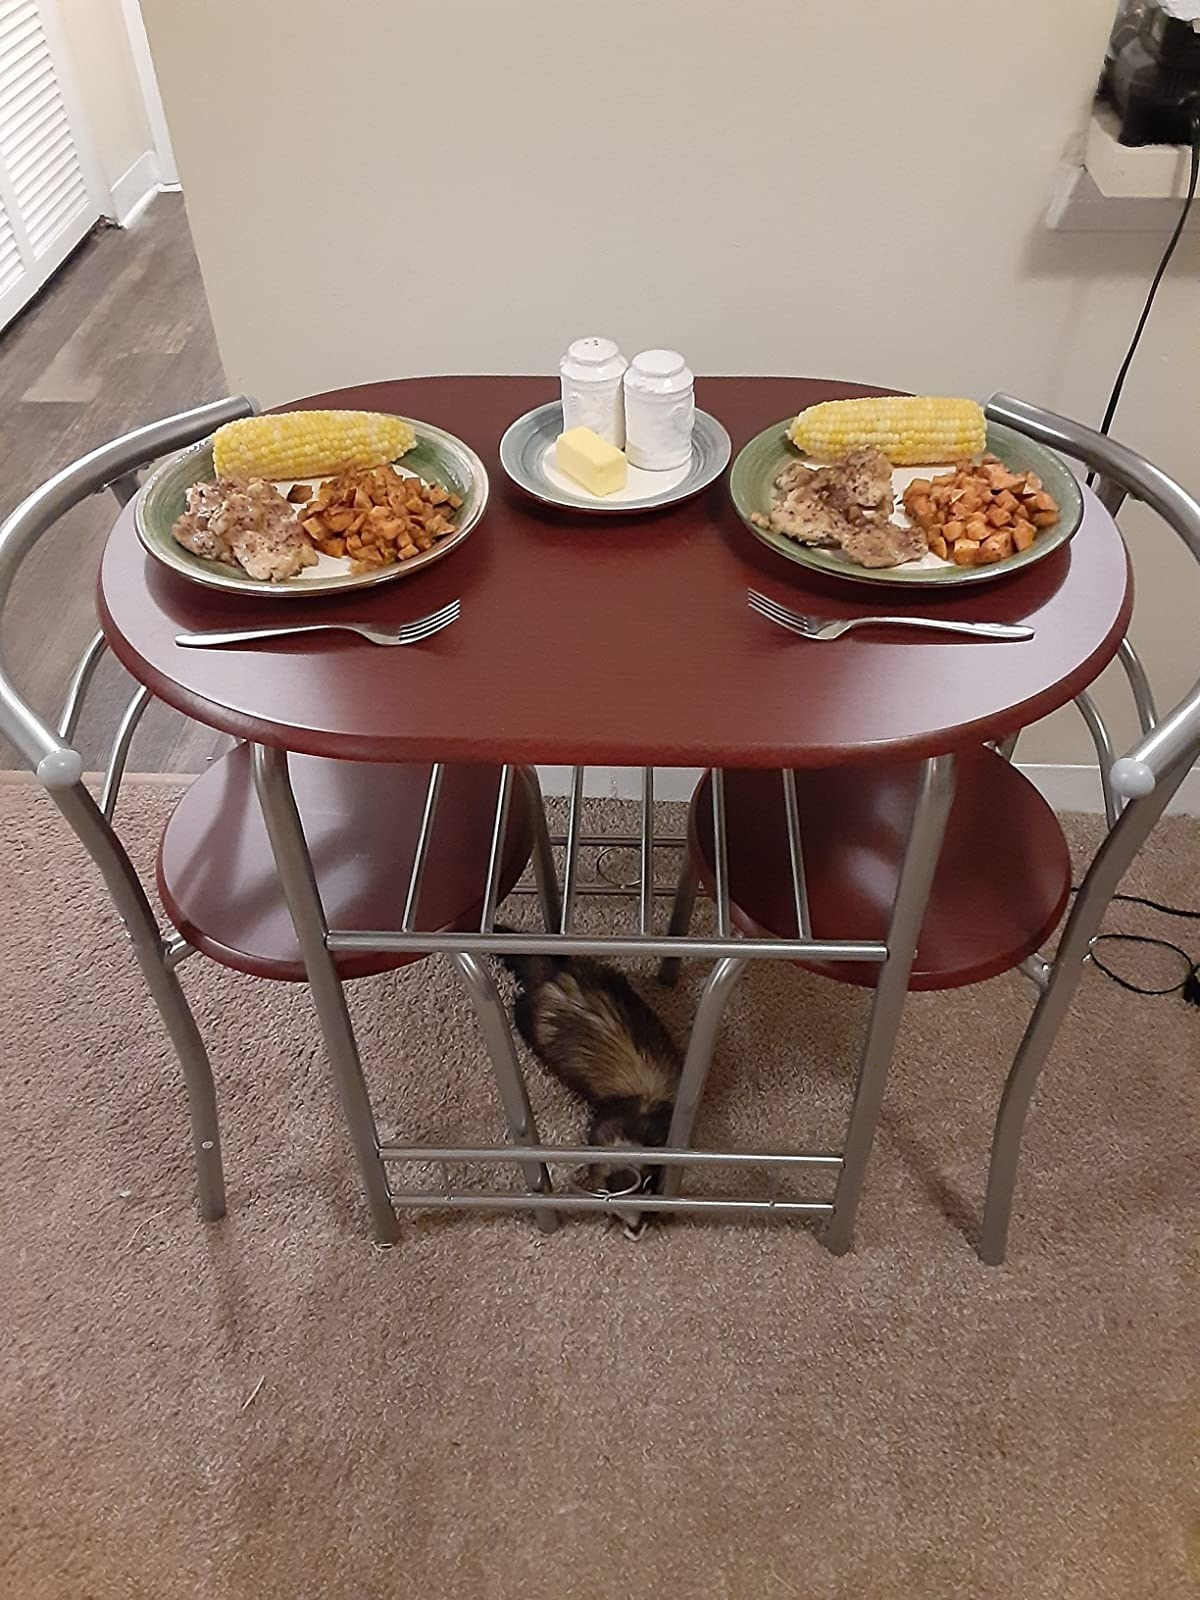 The round dining table with two chairs that fit just underneath it